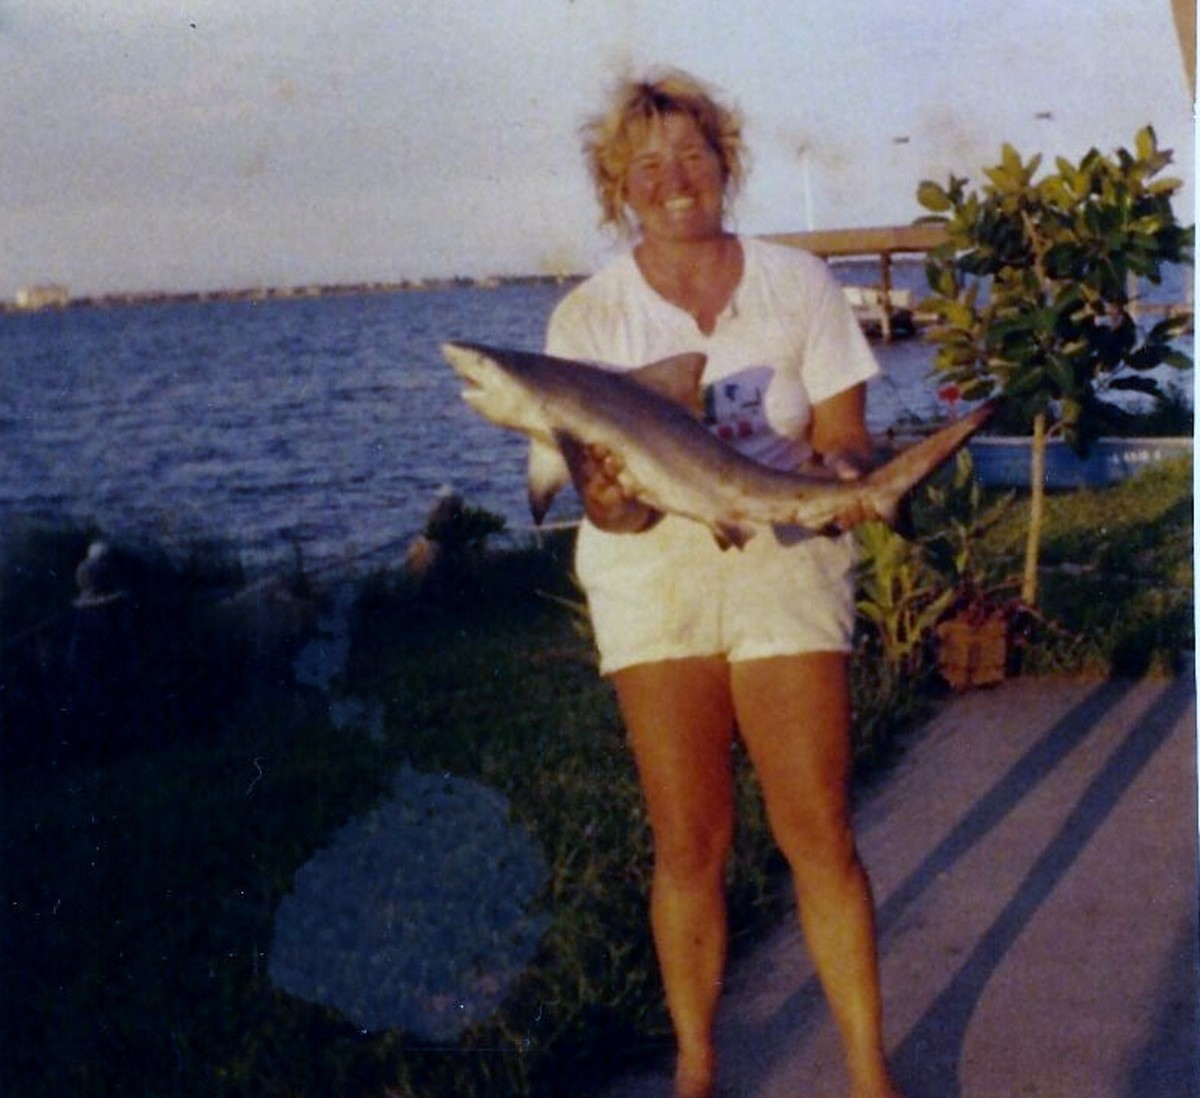 Shark fishing in florida 39 s indian river hubpages for Shark fishing florida